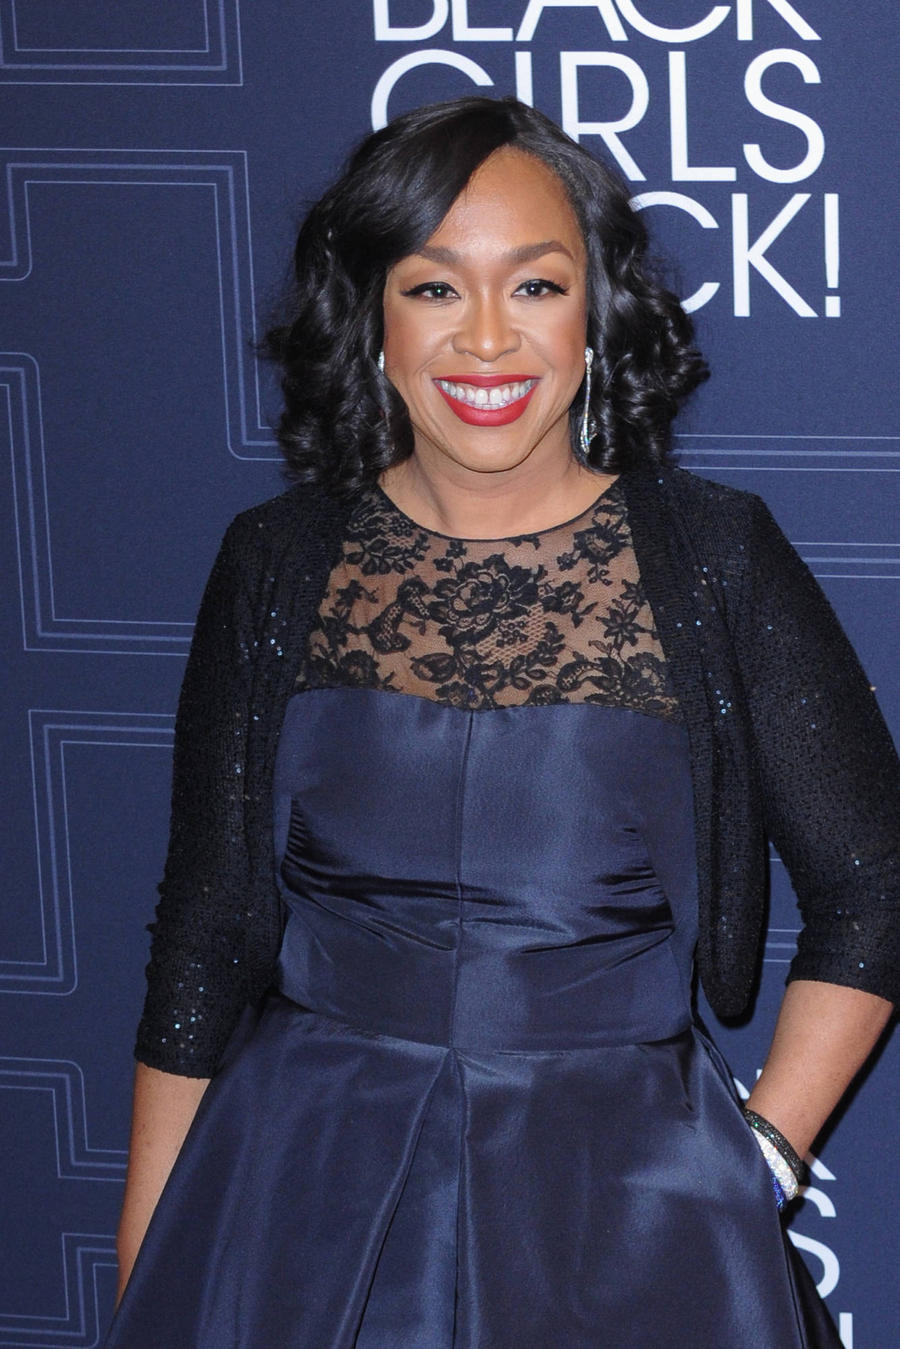 Shonda Rhimes Dismisses Petition Calling For Jesse